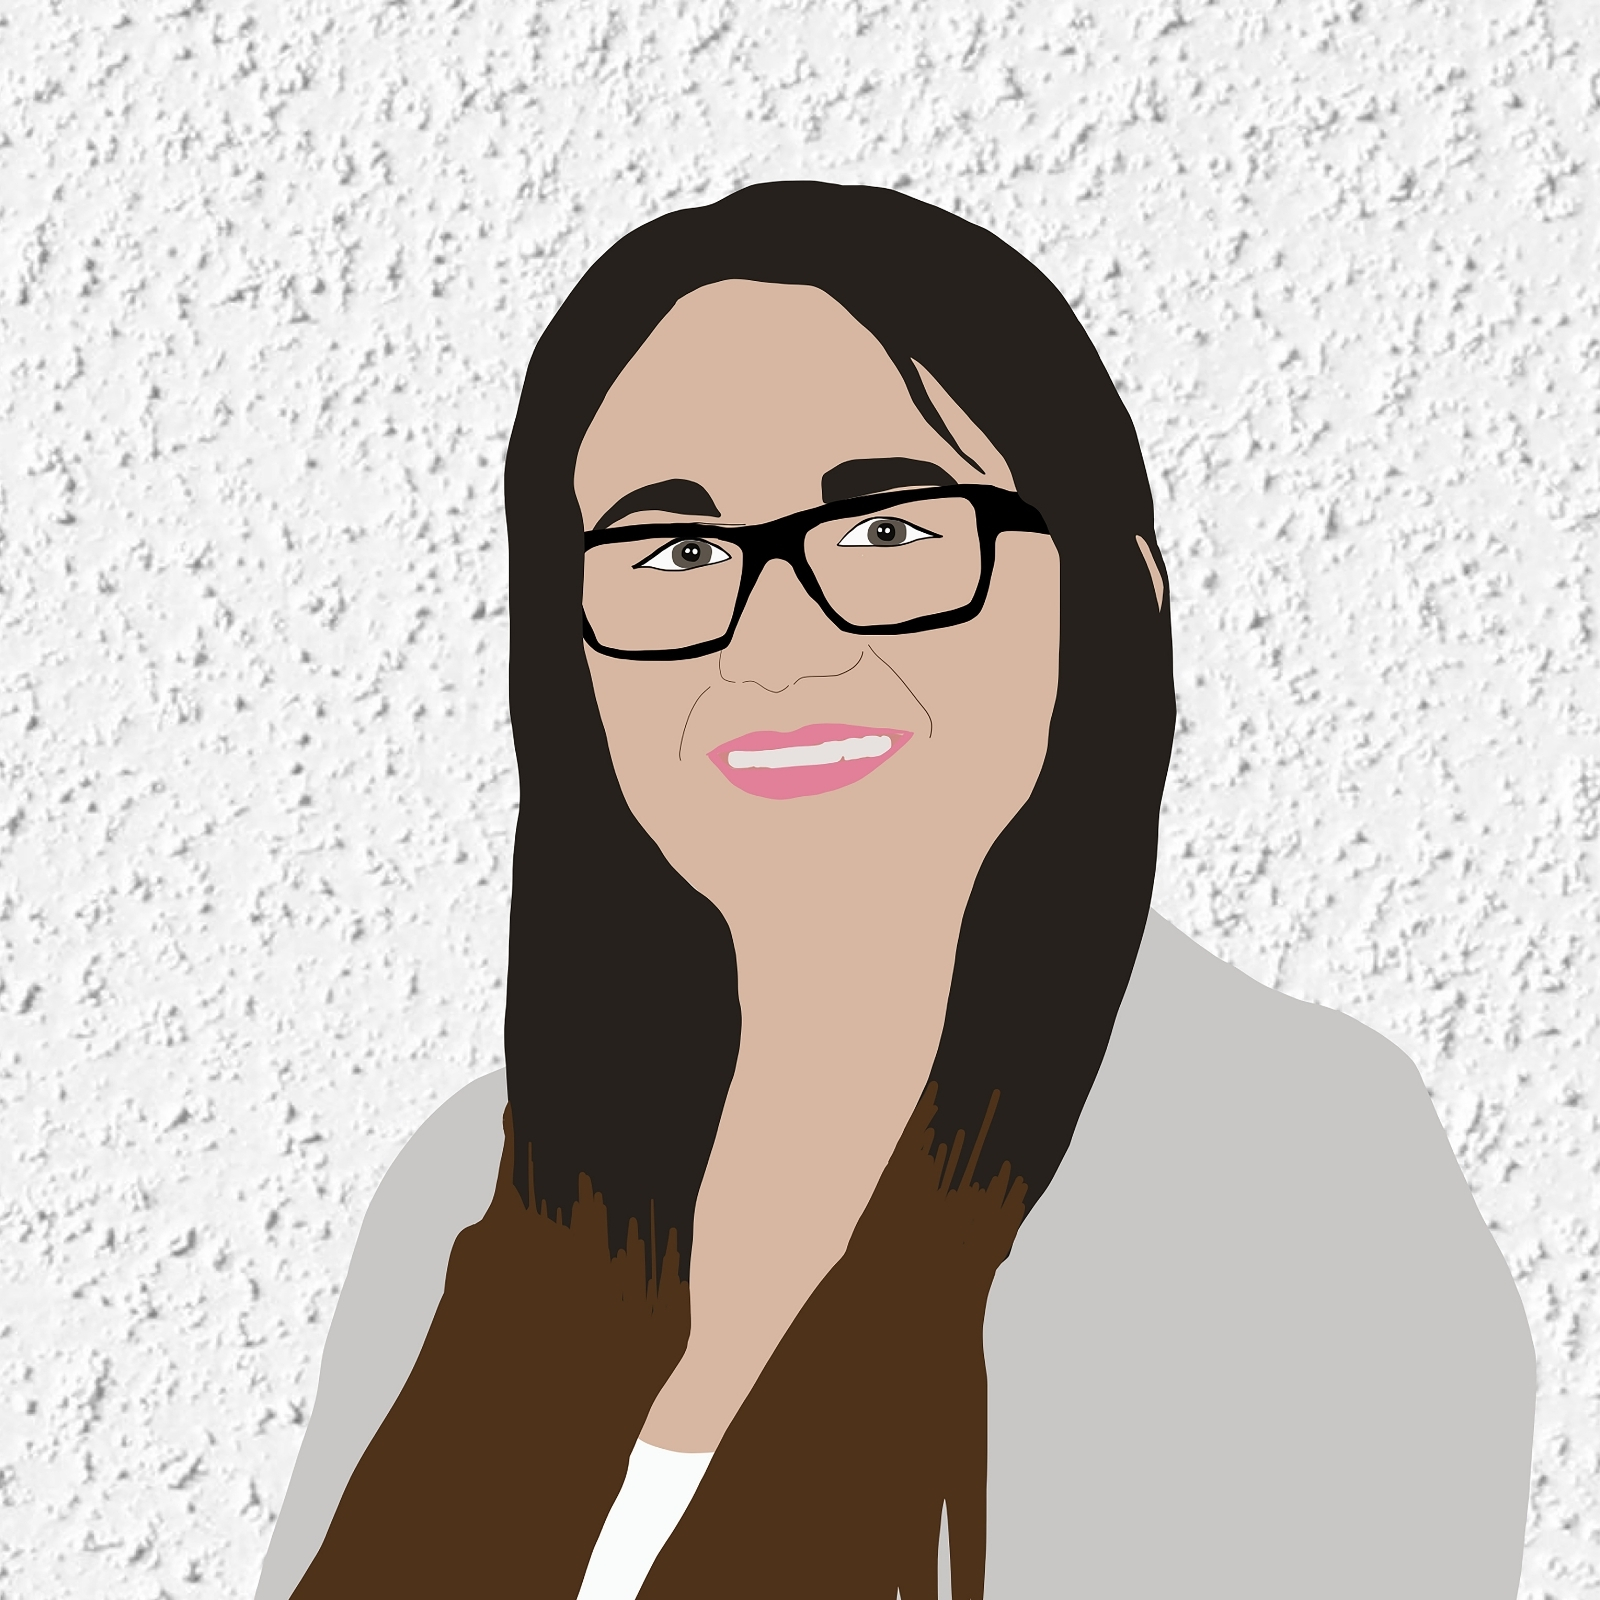 Digital illustration of Kirstin smiling against a white stucco background.